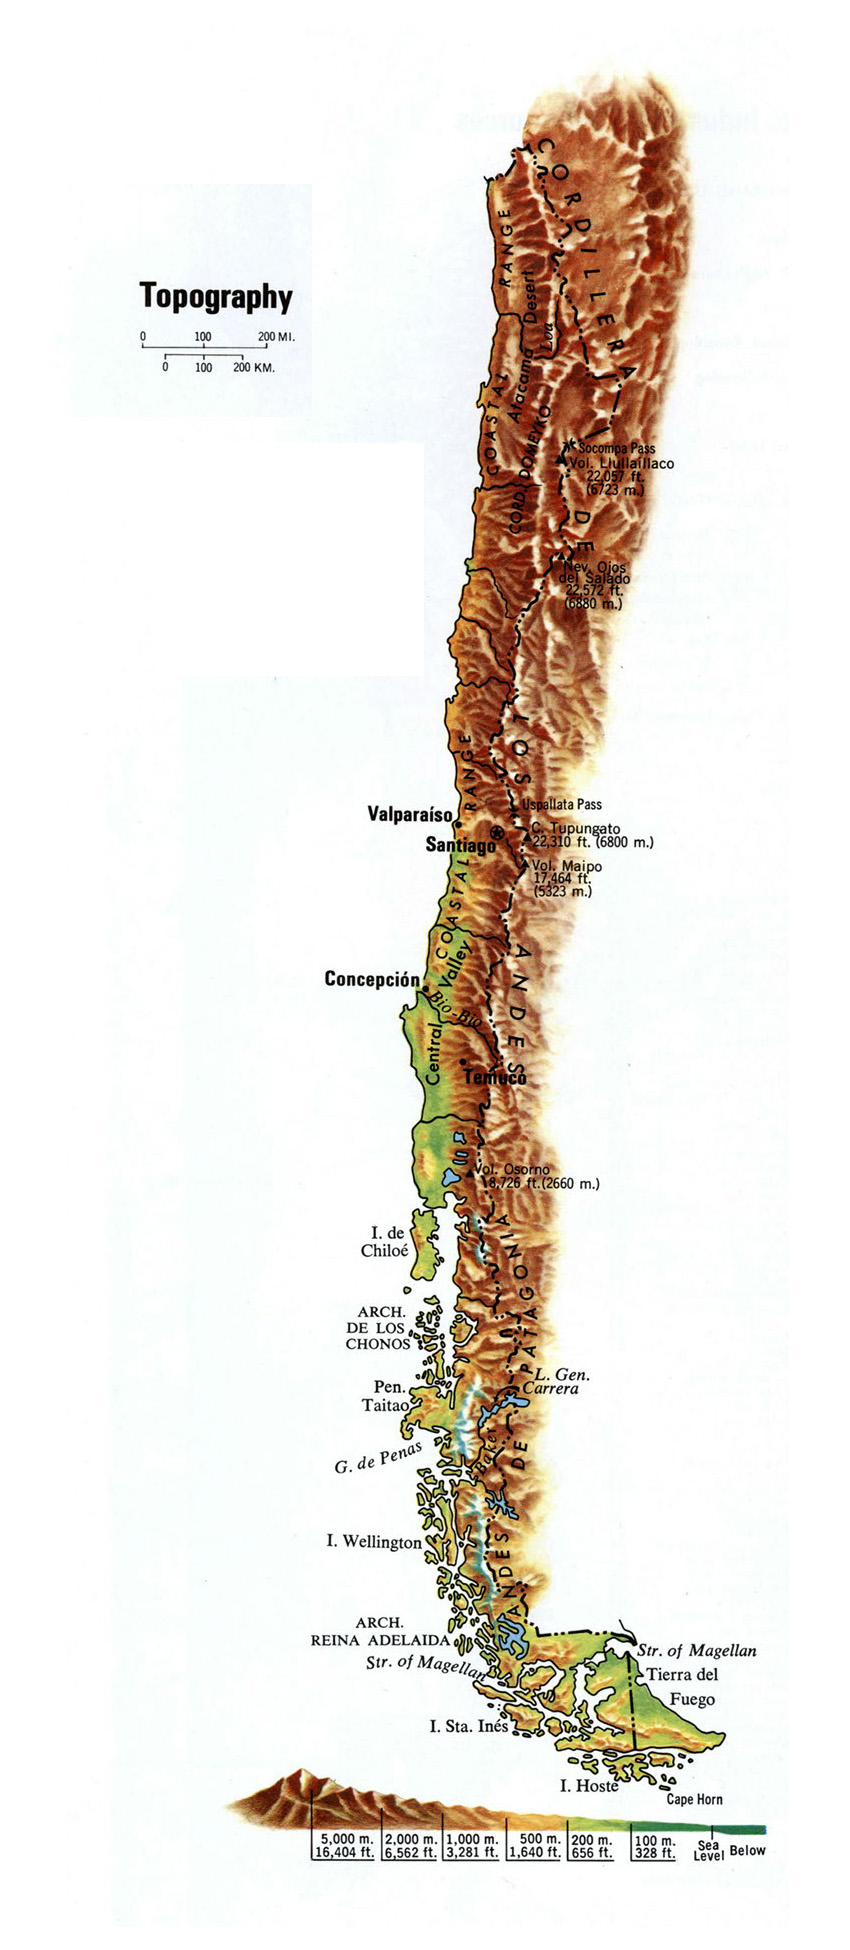 Large topography map of Chile Chile large topography map Vidiani